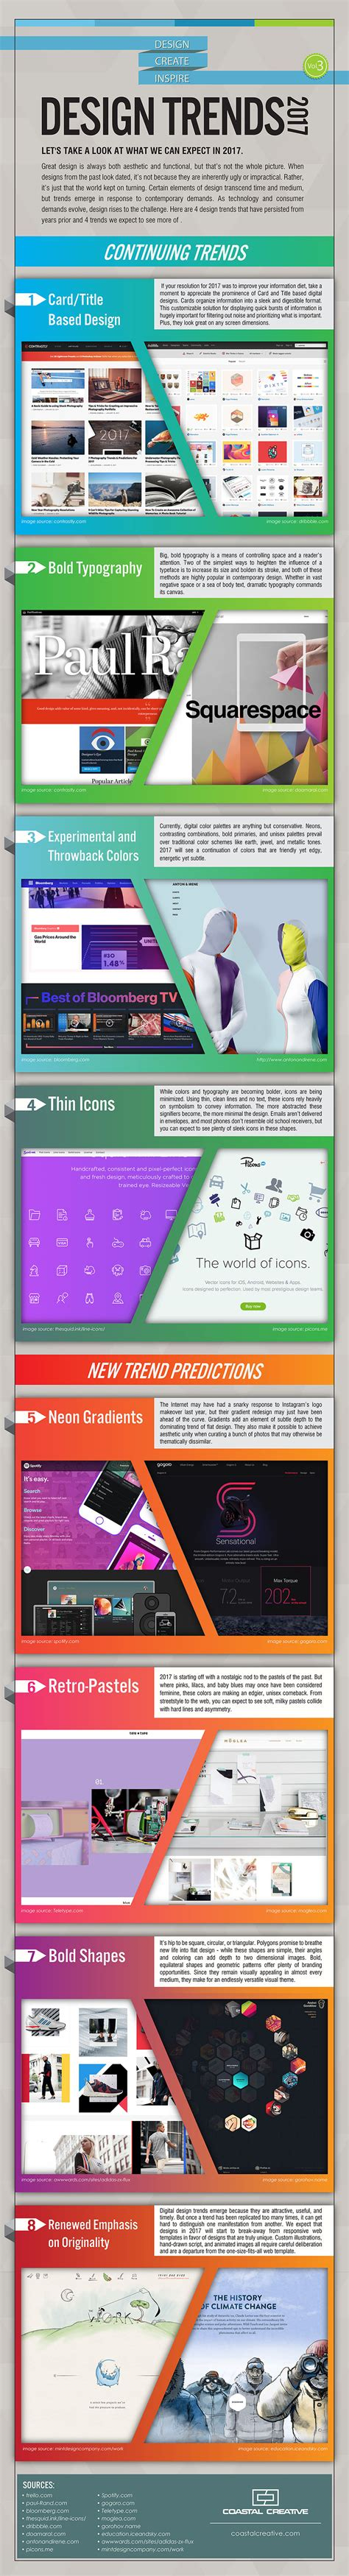 design trends in 2017 digital graphic design trends 2017 infographic